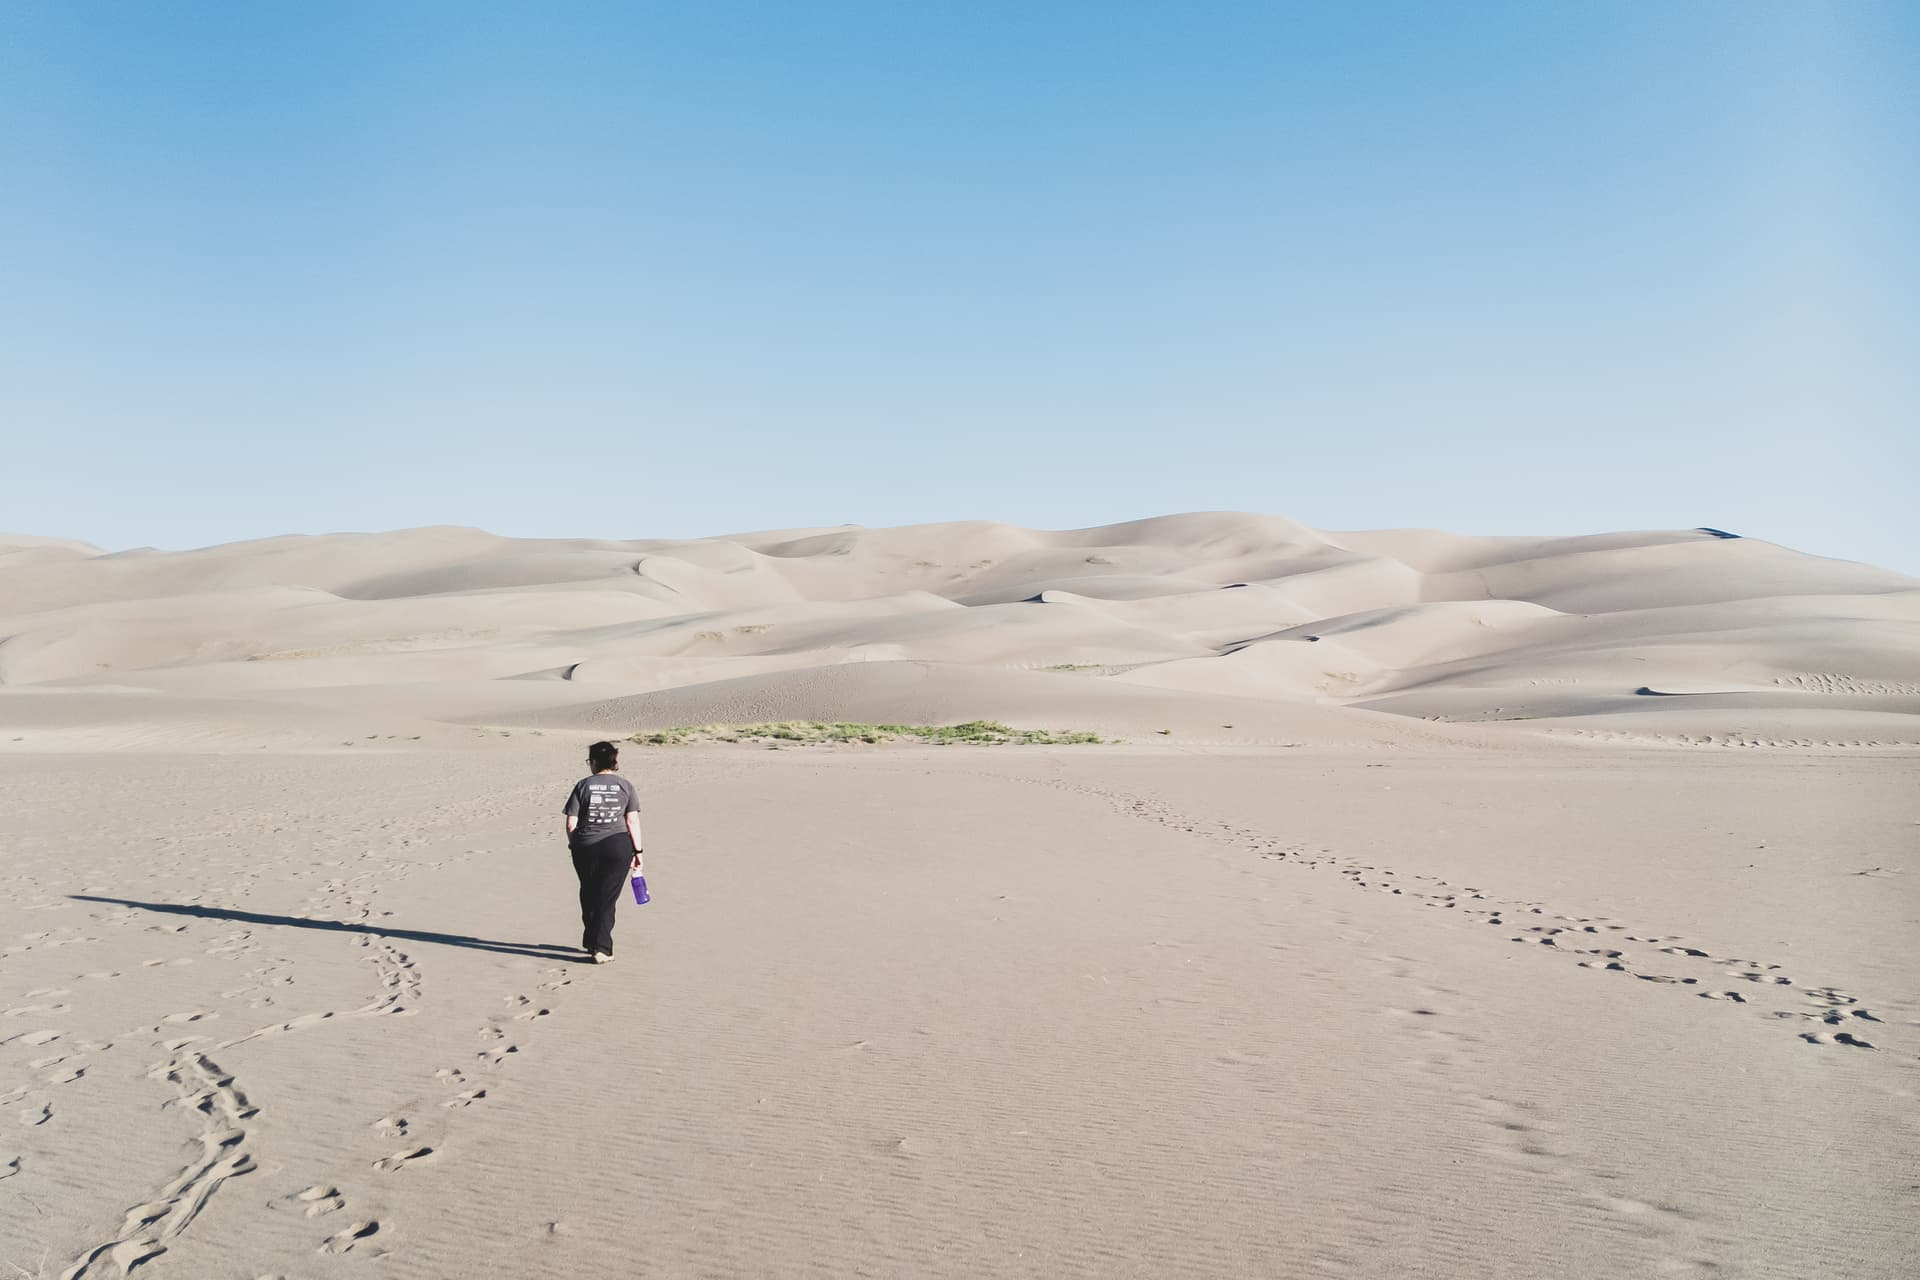 A woman in a gray shirt and black pants walks across a sand field towards a distant wall of high dunes.